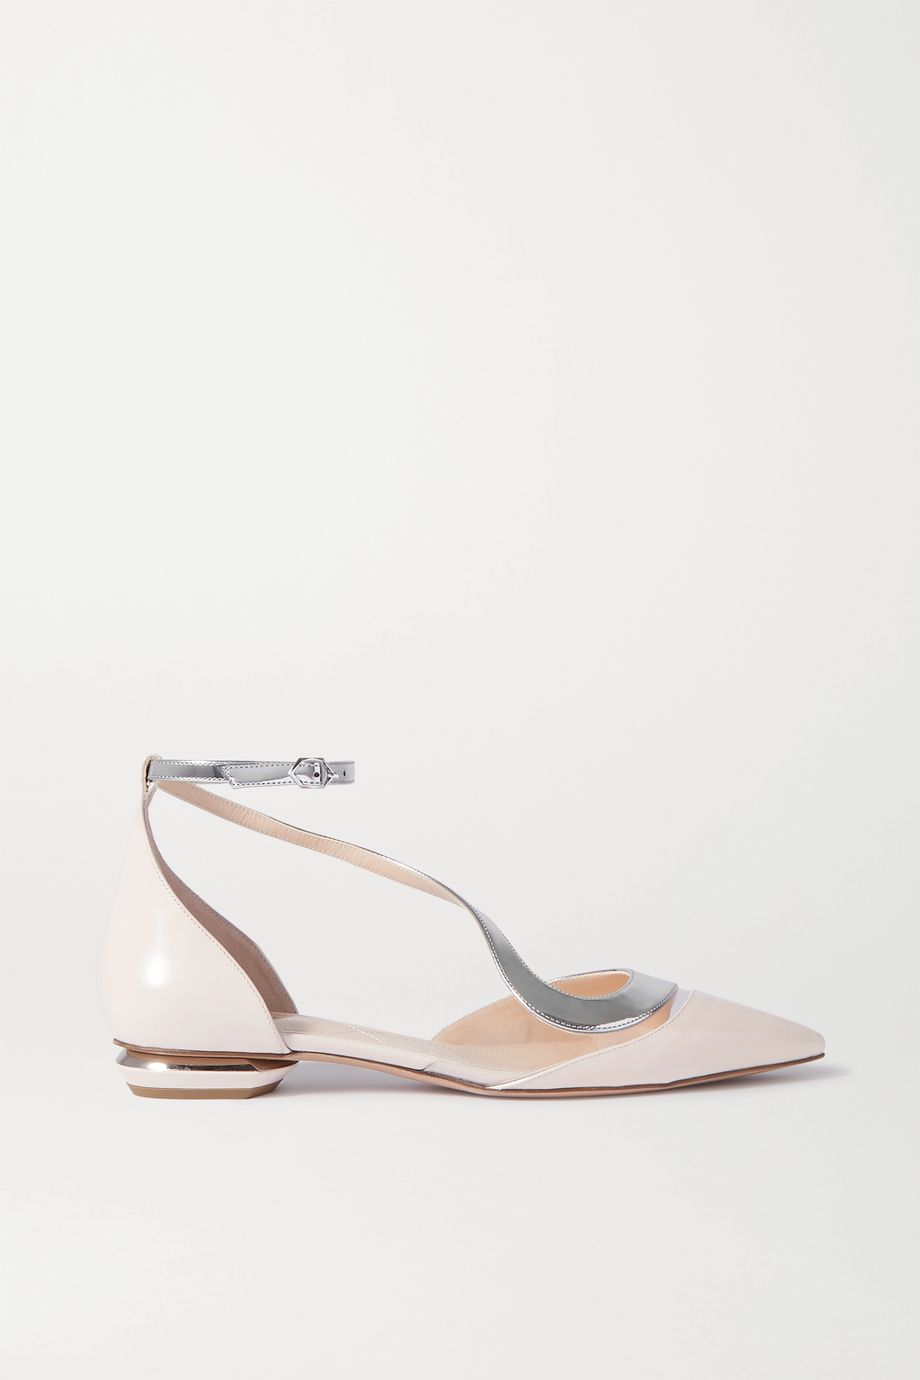 Nicholas Kirkwood S Ballerina two-tone patent-leather and PVC point-toe flats